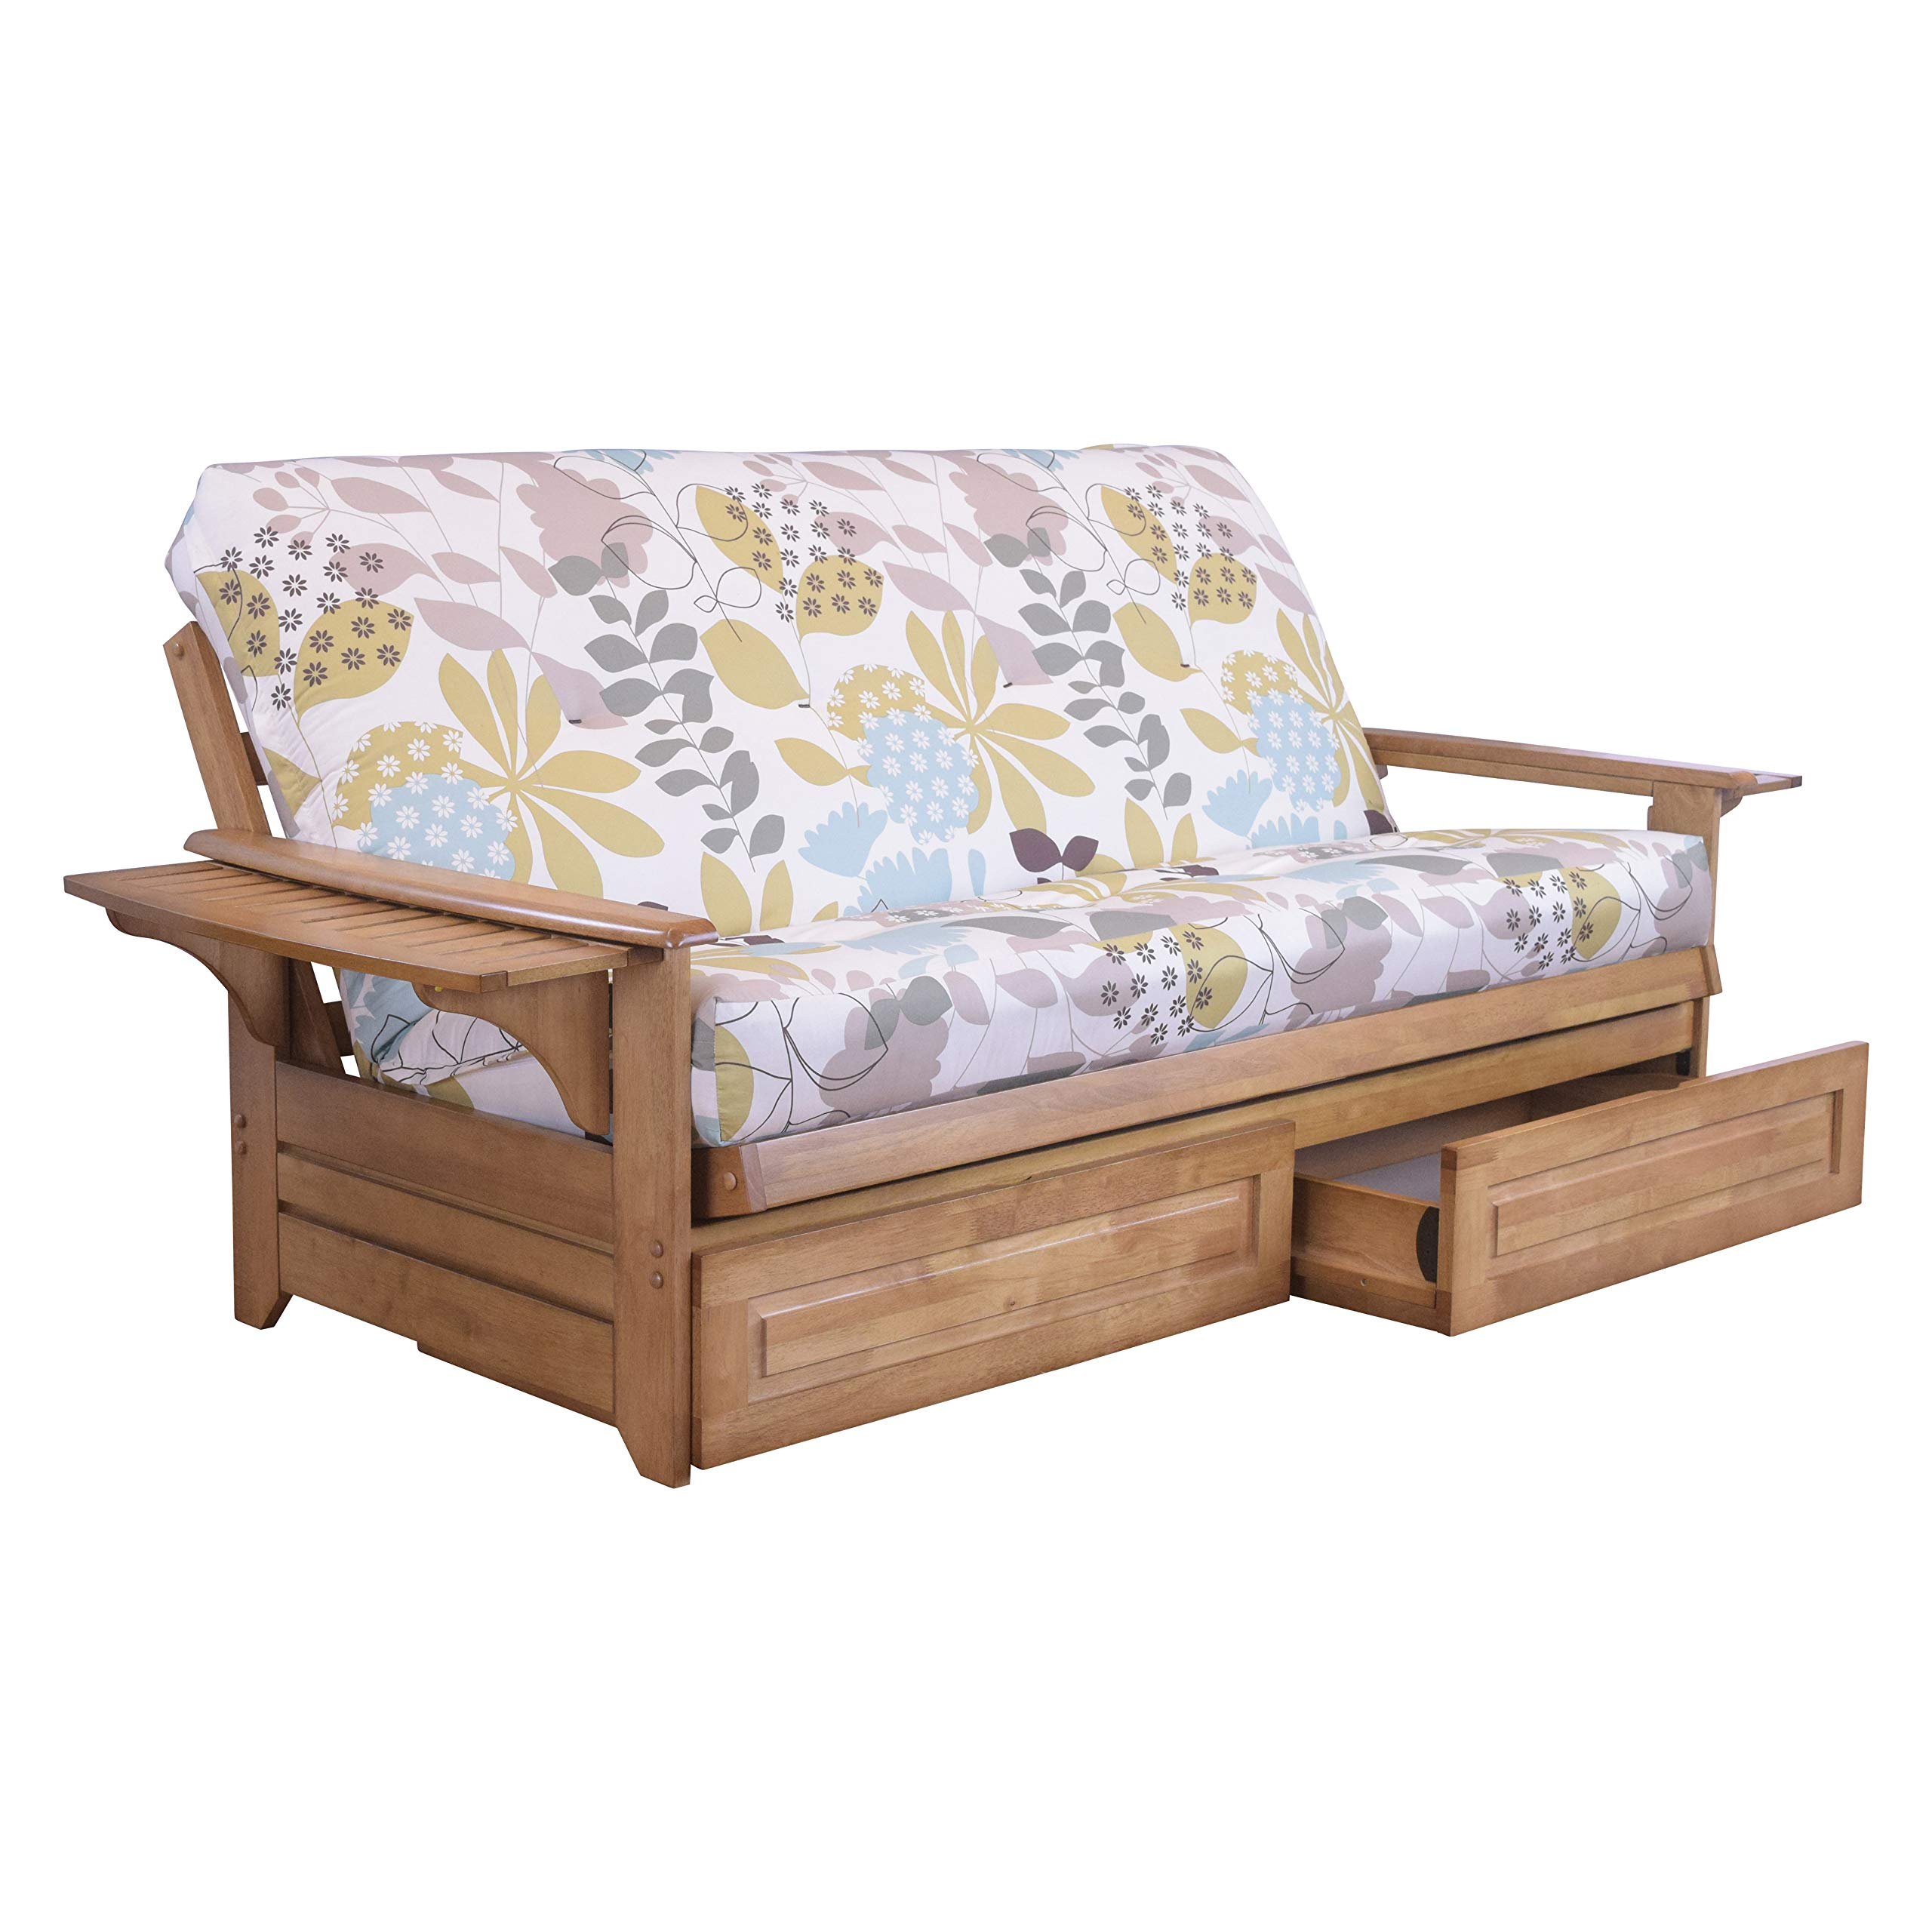 Northland Futon Wood Drawers and Frame - Arm Tray - Underbed Storage with Honey Brown Finish (Full) by Cordova Futons